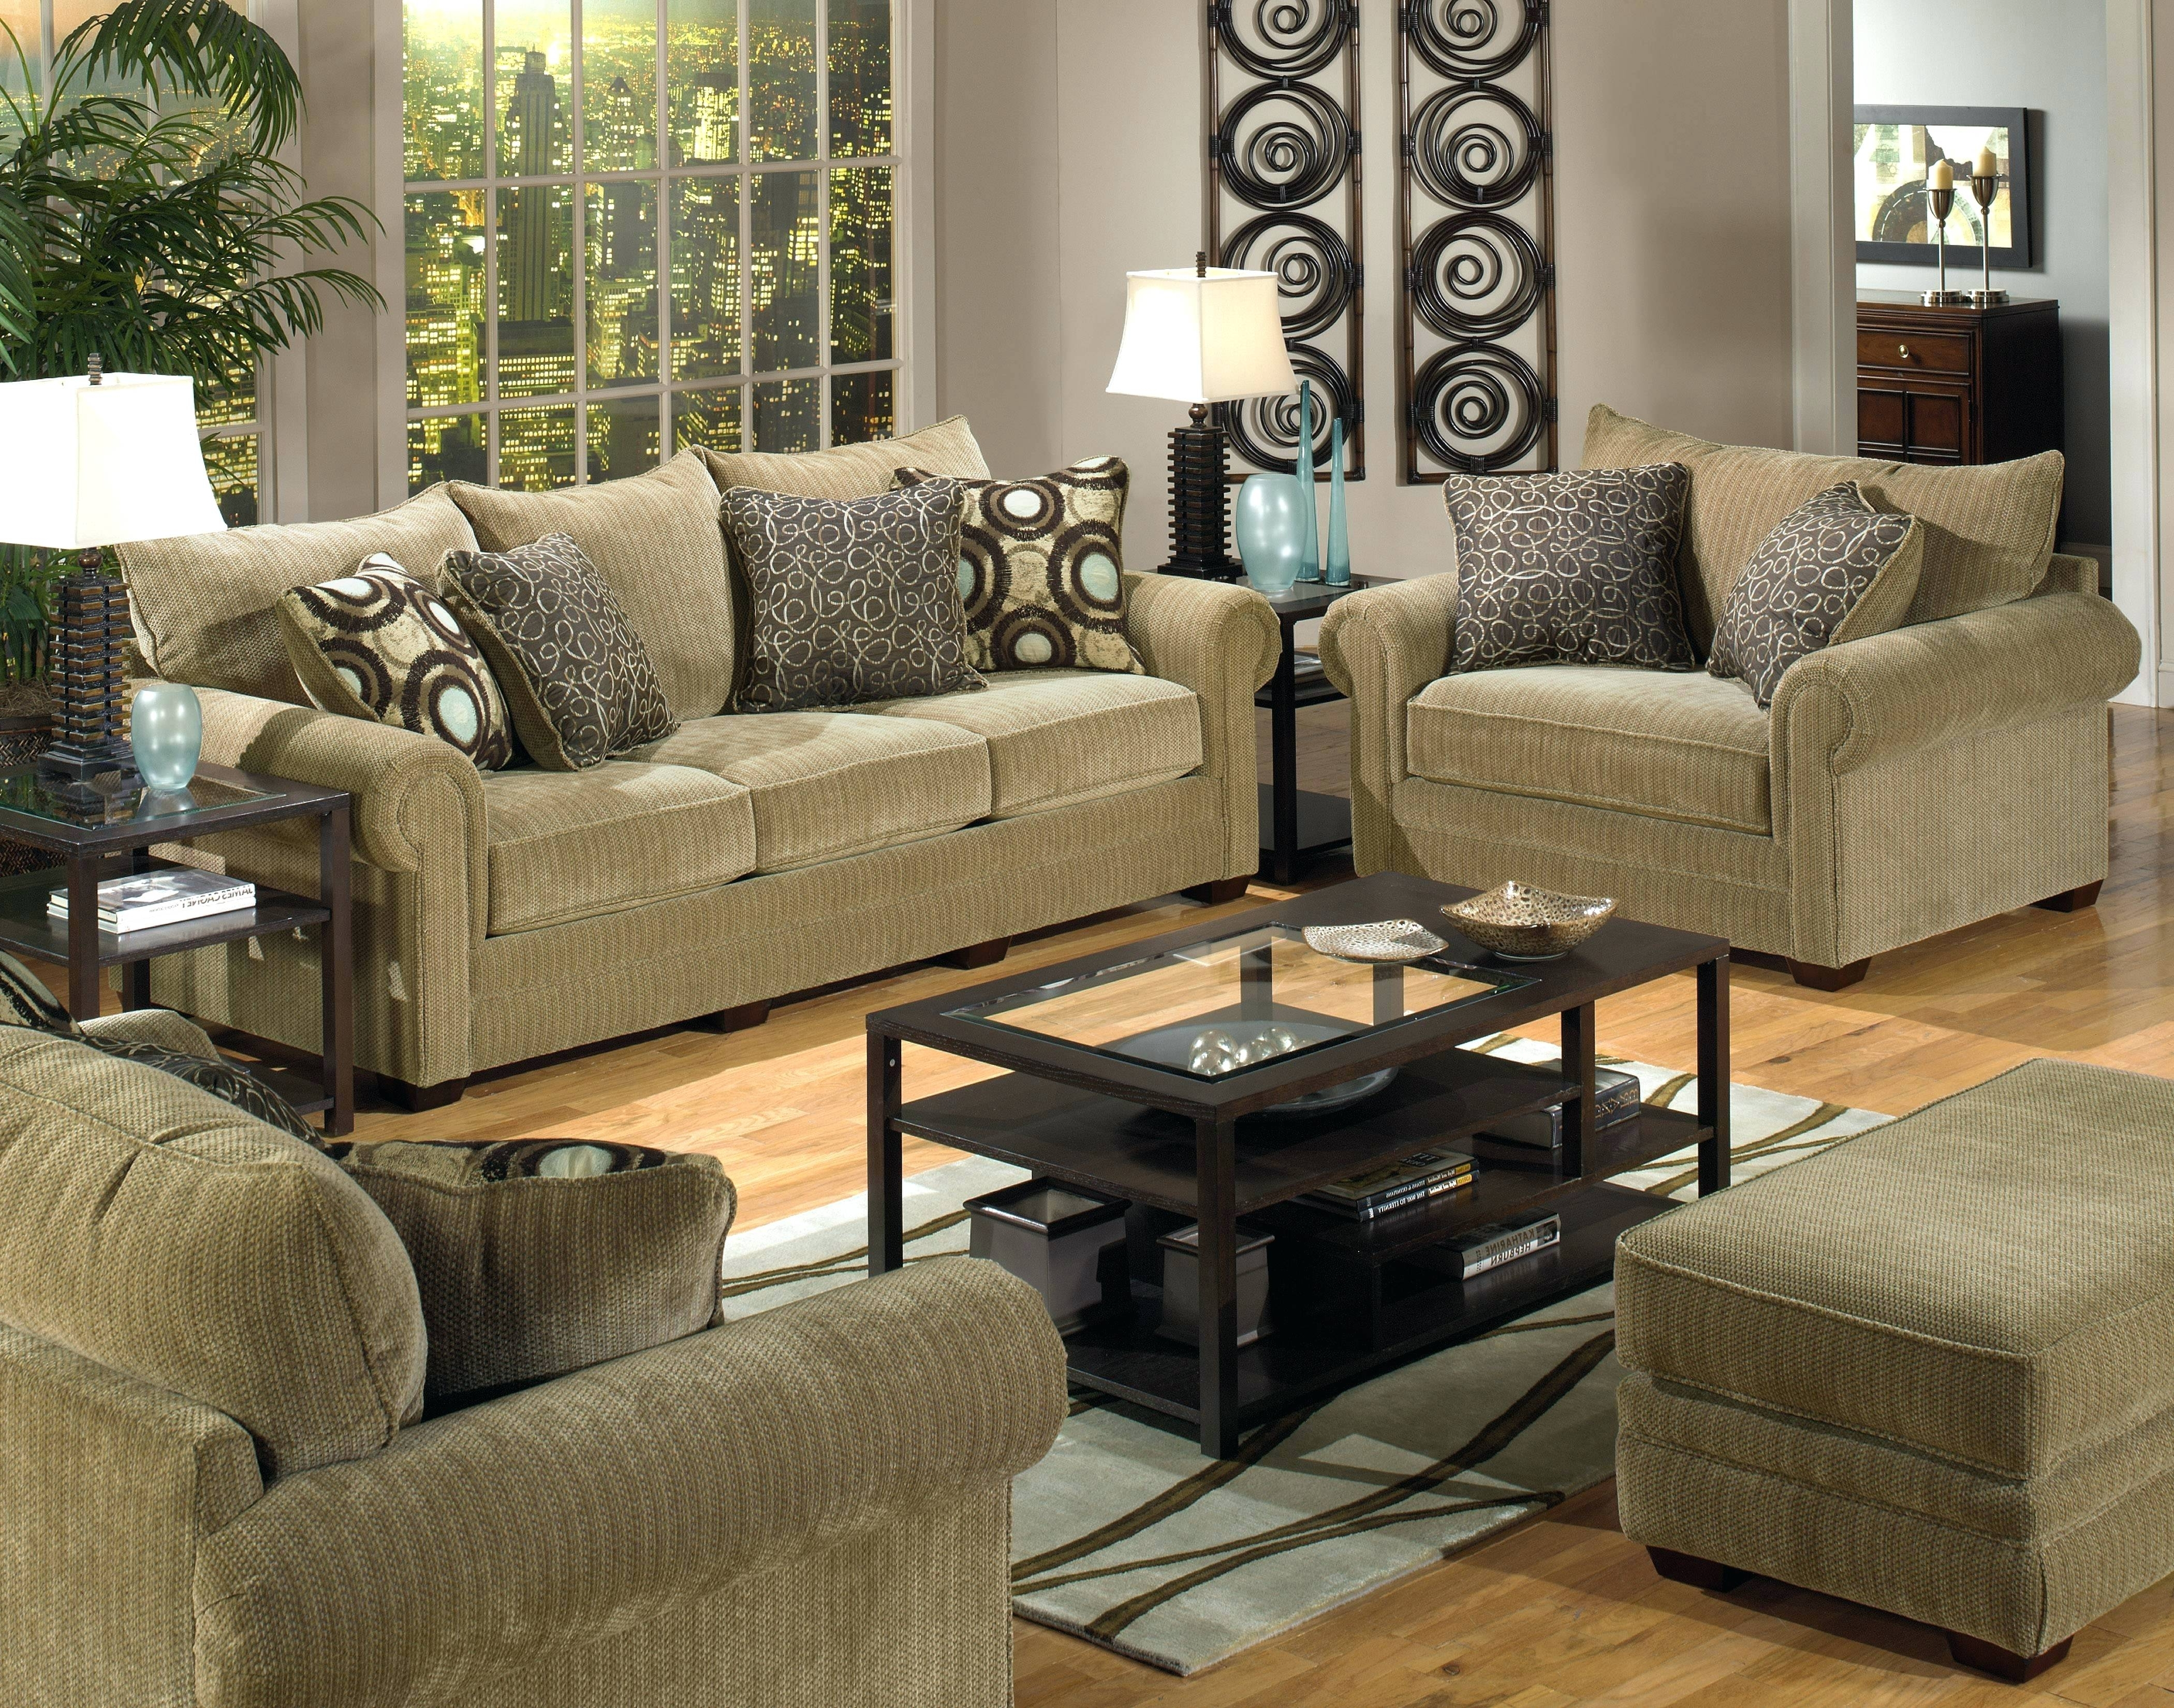 Current Cream Colored Sofas Inside Cream Colored Sofa Throw Pillows Covers Microfiber (View 9 of 20)